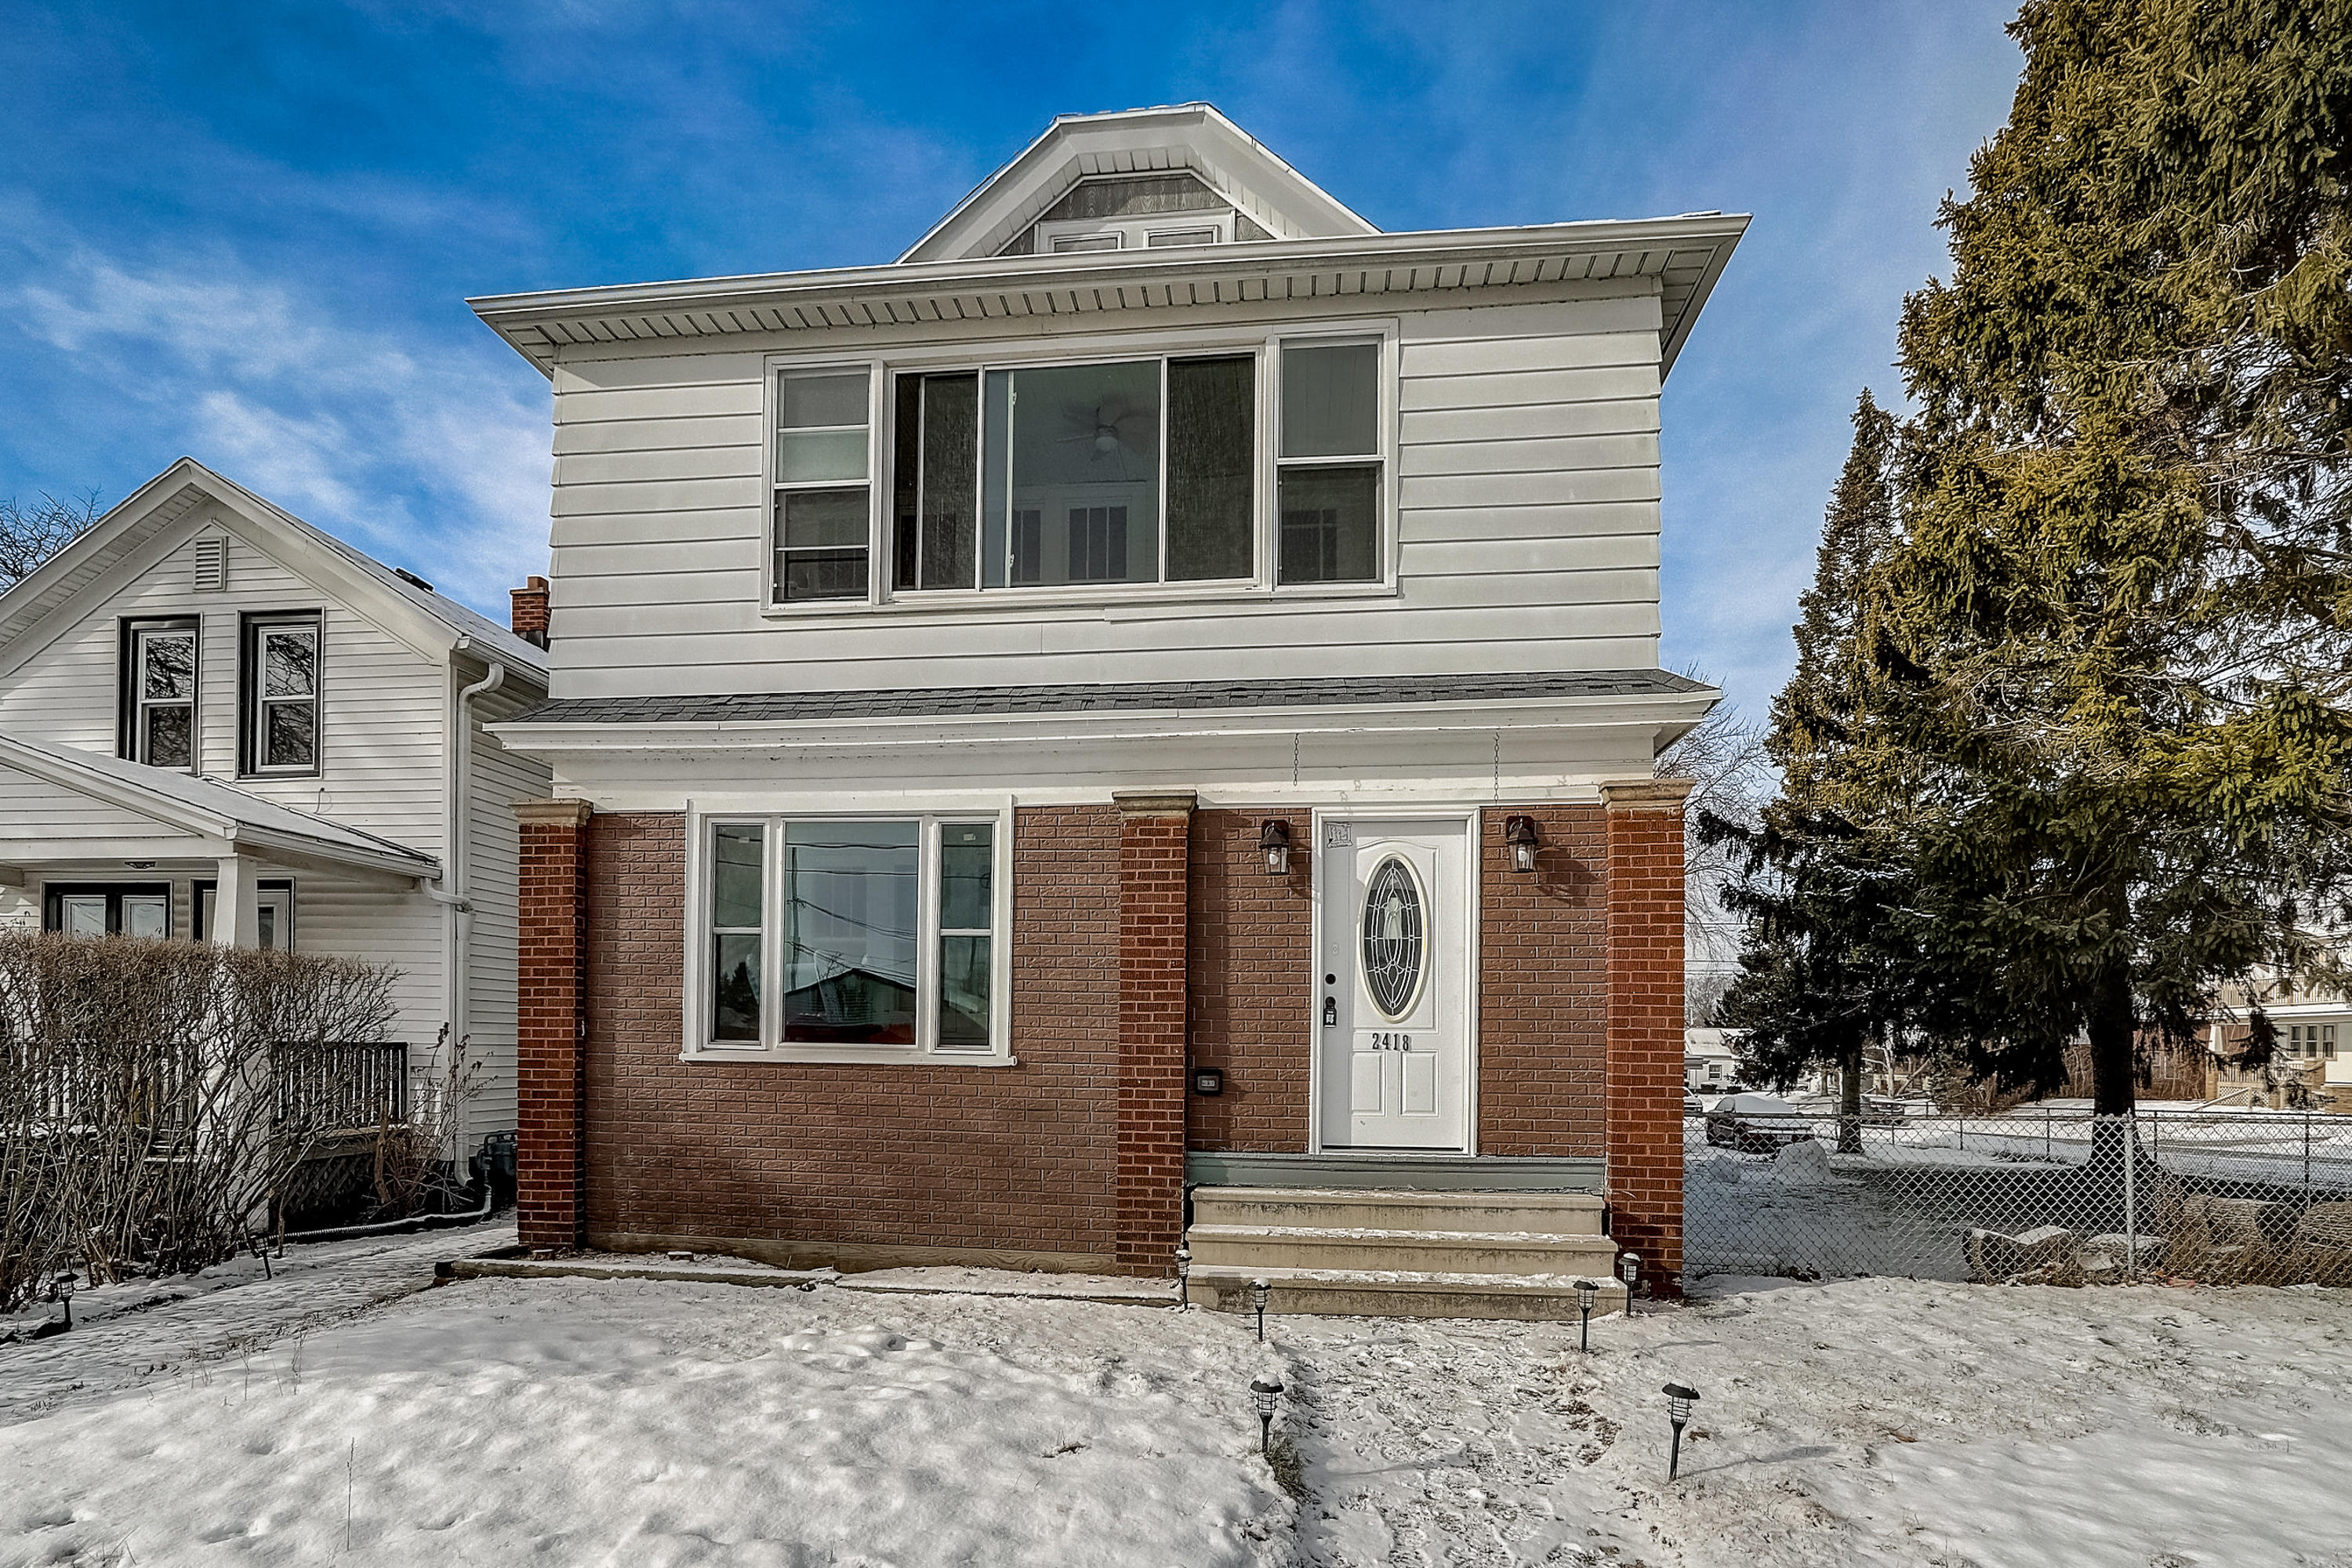 2418 5th Ave, South Milwaukee, Wisconsin 53172, 2 Bedrooms Bedrooms, 6 Rooms Rooms,1 BathroomBathrooms,Two-Family,For Sale,5th Ave,1,1724943